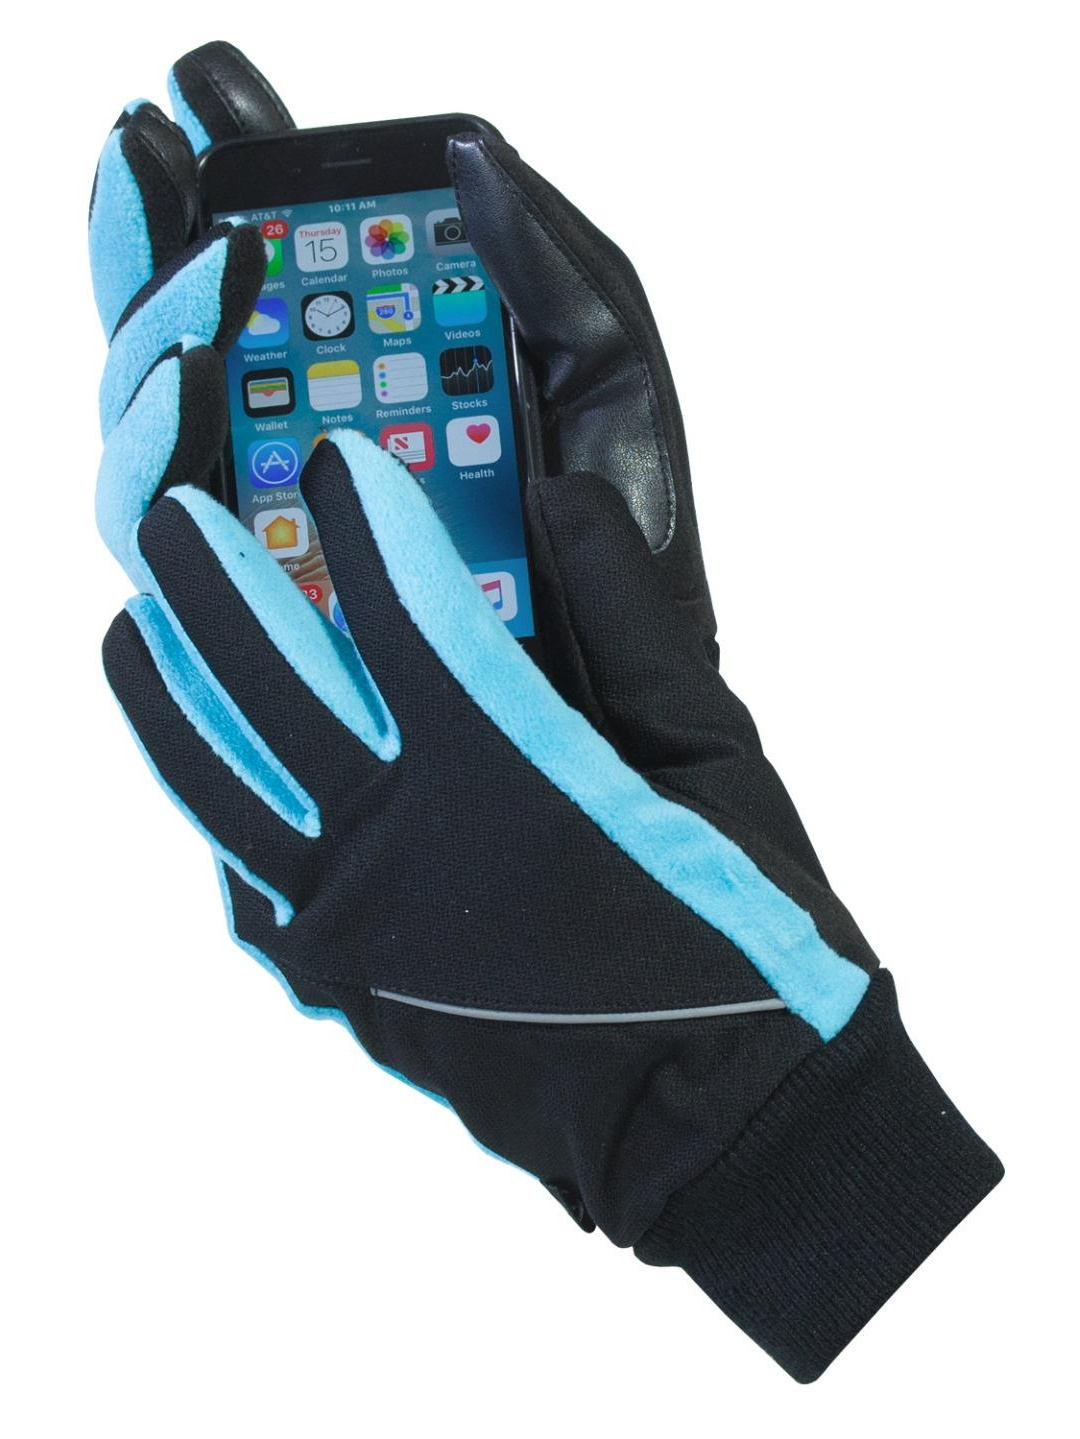 Isotoner Women's Touch Screen Thermaflex Gloves Black & Aqua Small / Medium